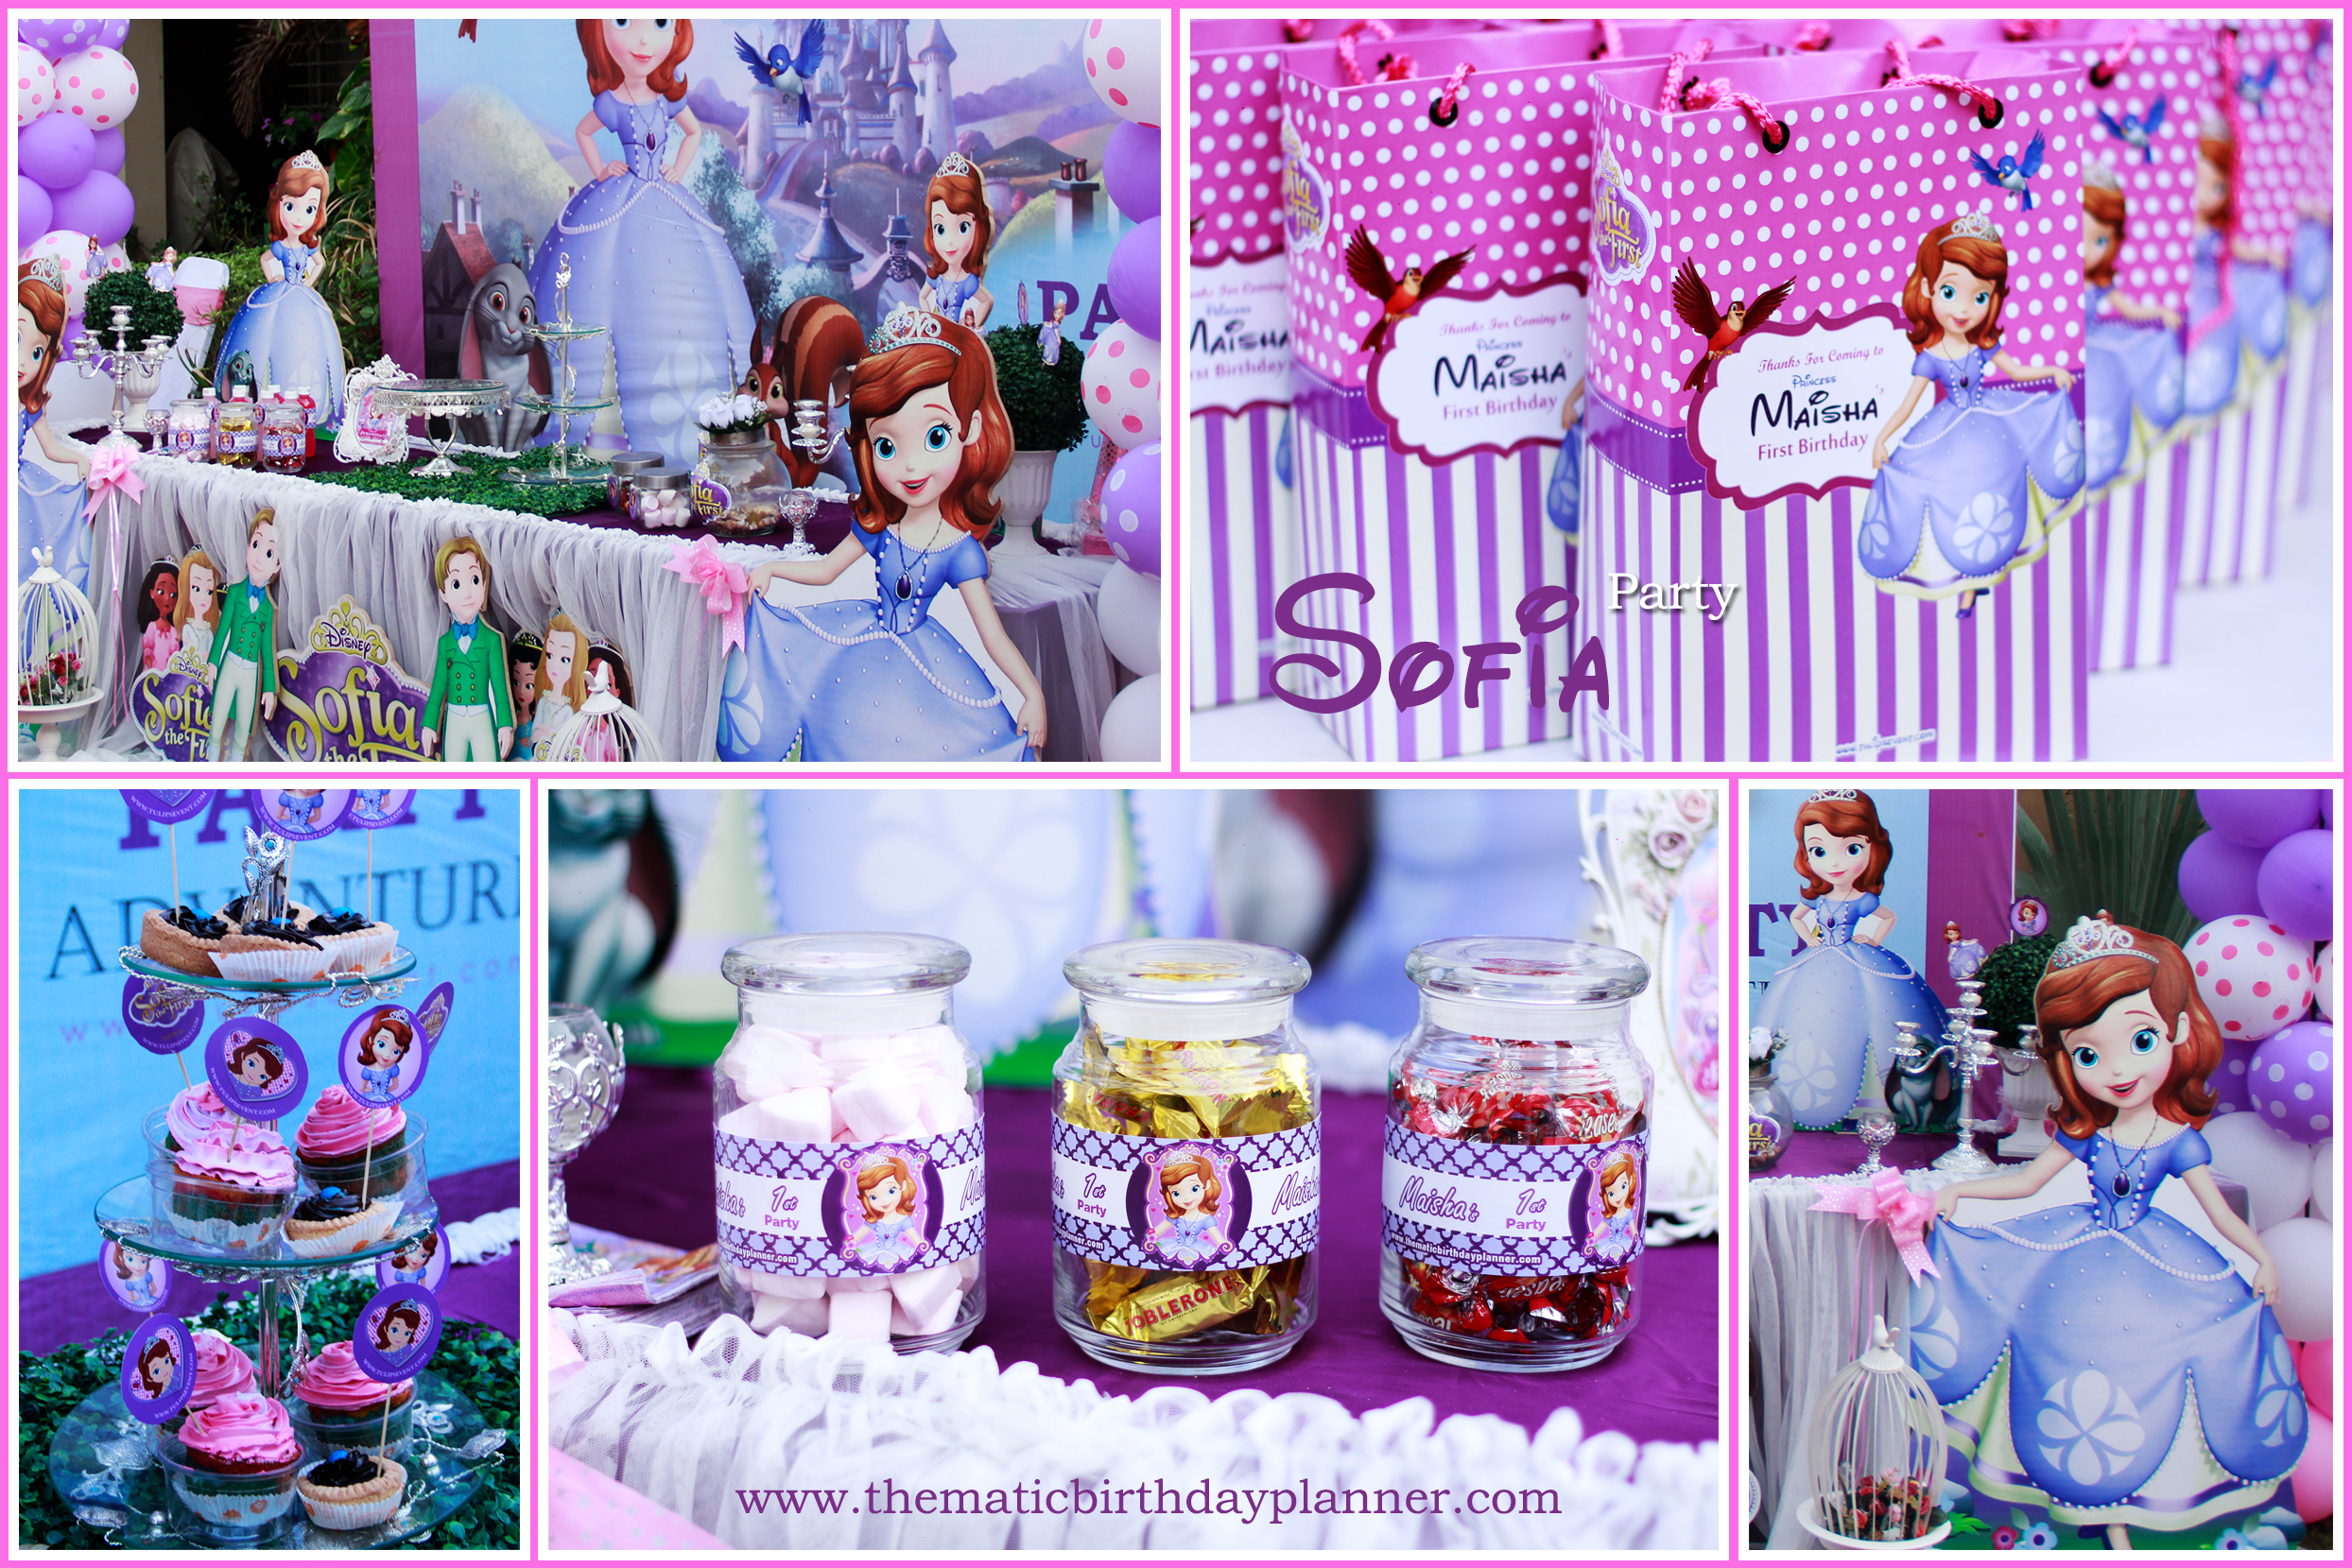 themed birthday party ideas for baby girl ; f71fd547987f175fd950d8bad1054634